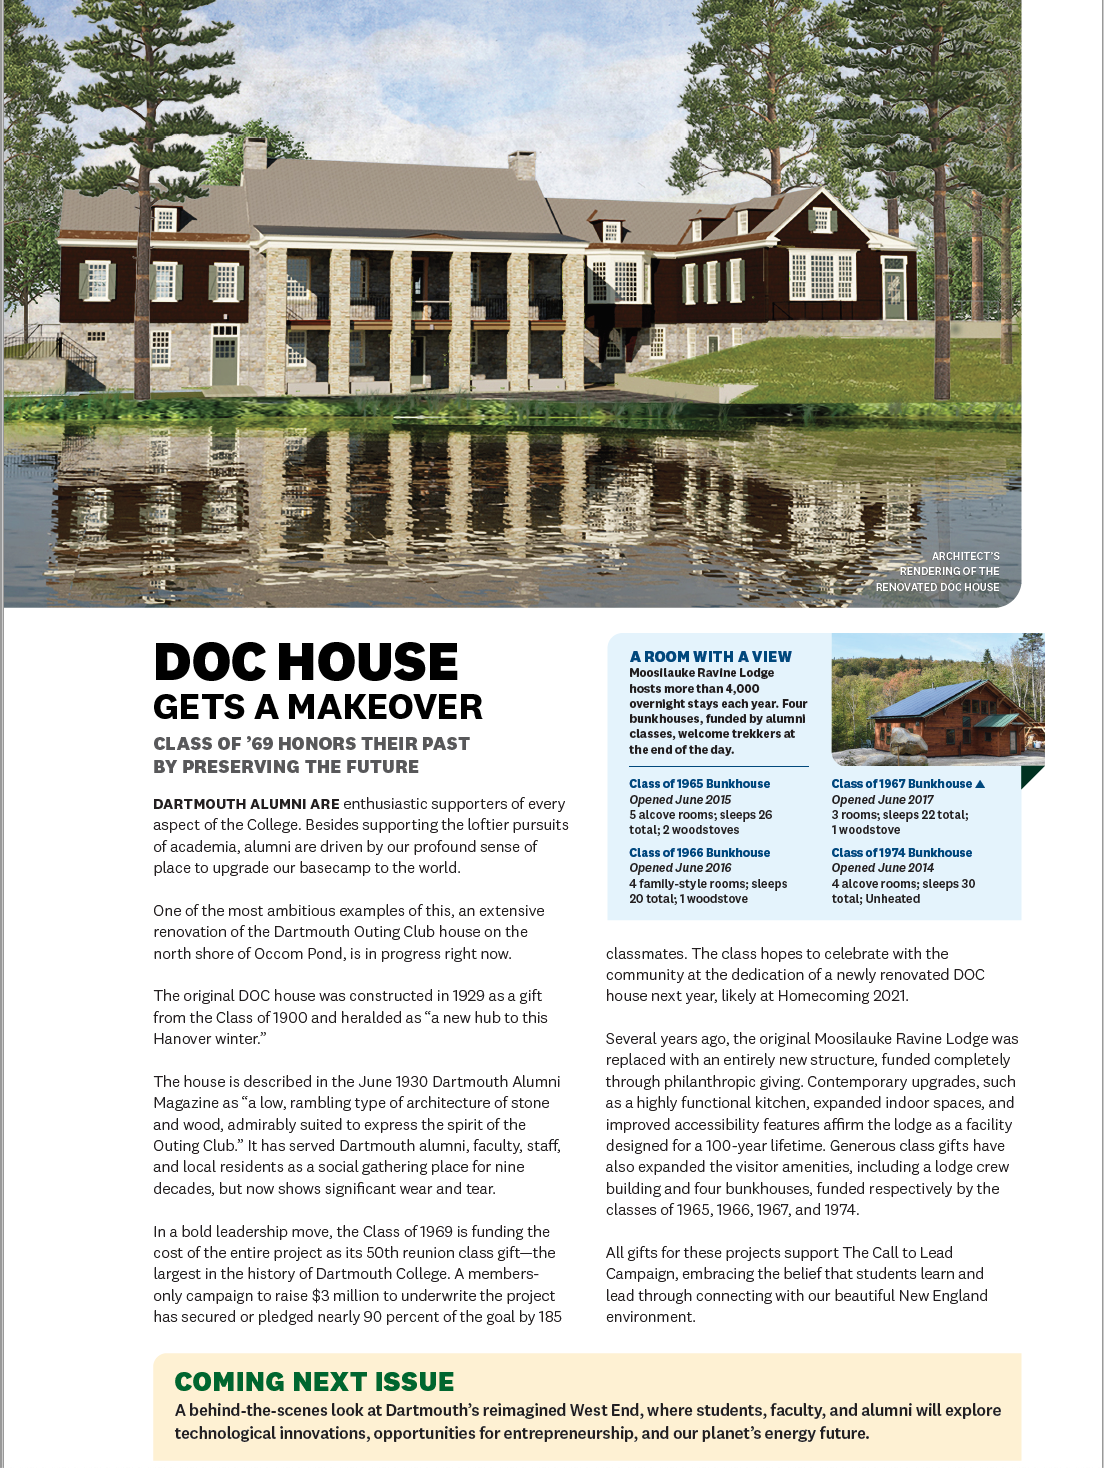 Occom Pond and DOC House project